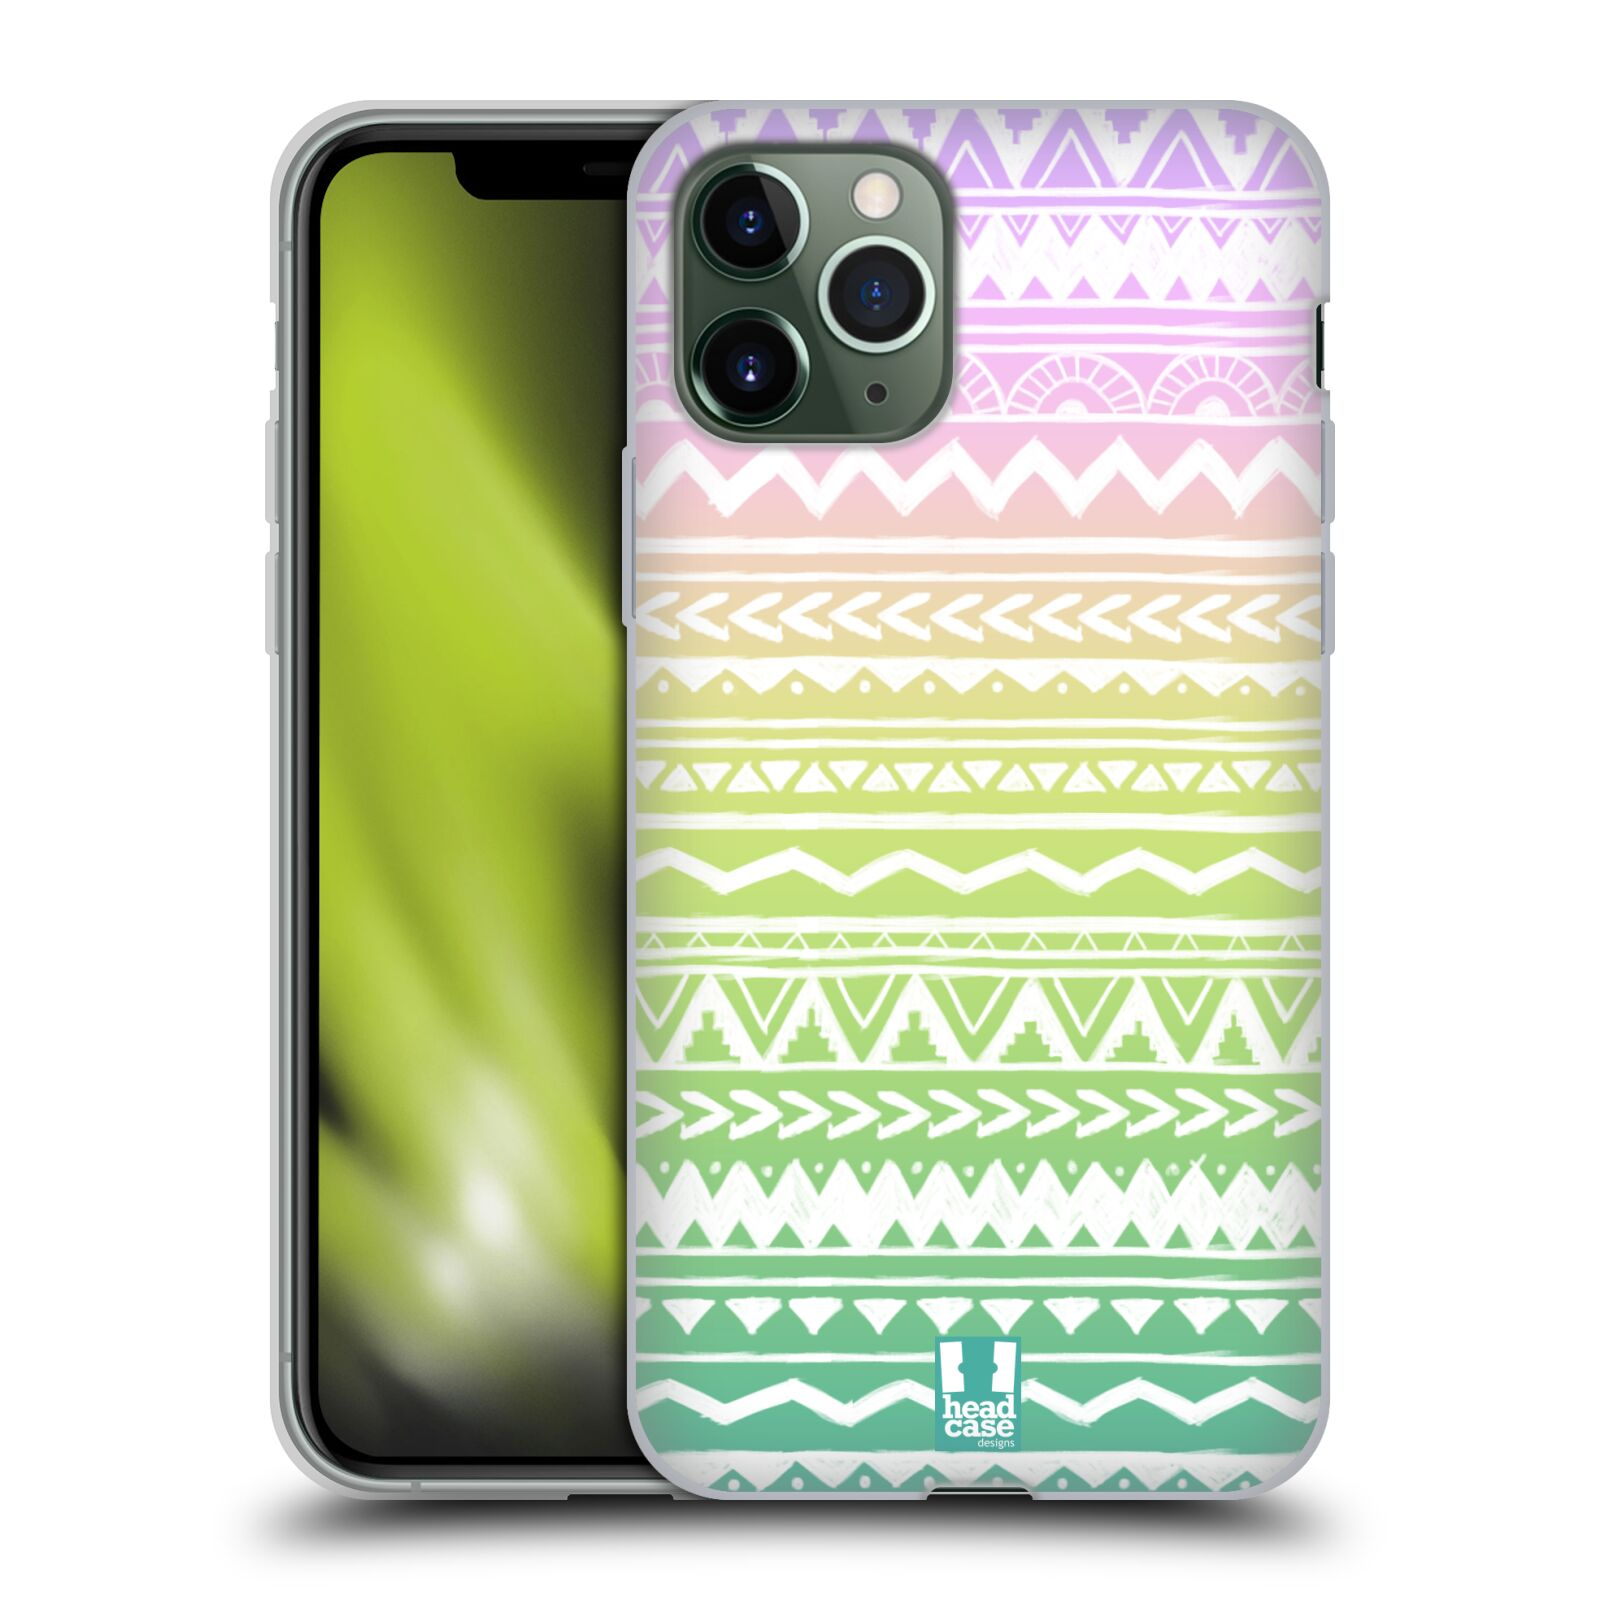 karl krytu na iphone 7 | Silikonové pouzdro na mobil Apple iPhone 11 Pro - Head Case - MIX AZTEC DRAWN